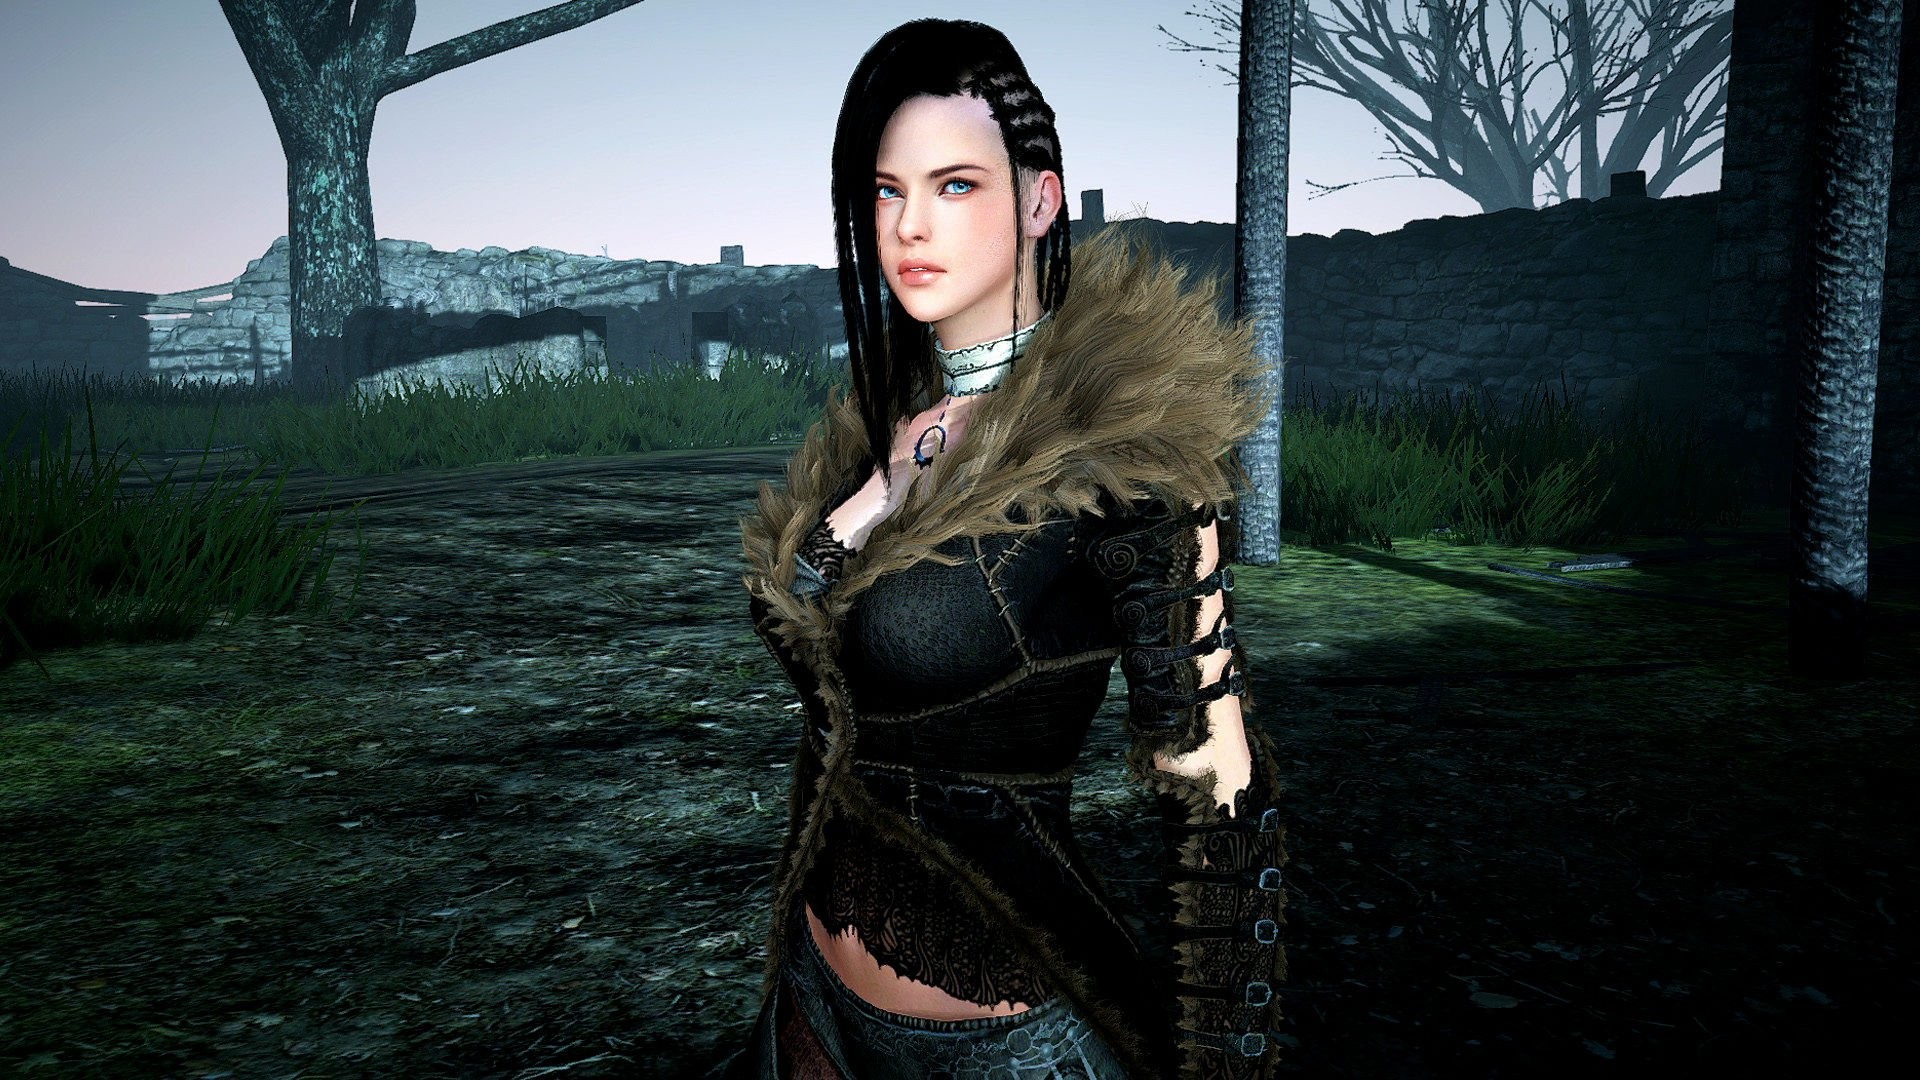 Black Desert Online Wallpaper 183 ① Download Free Stunning Hd